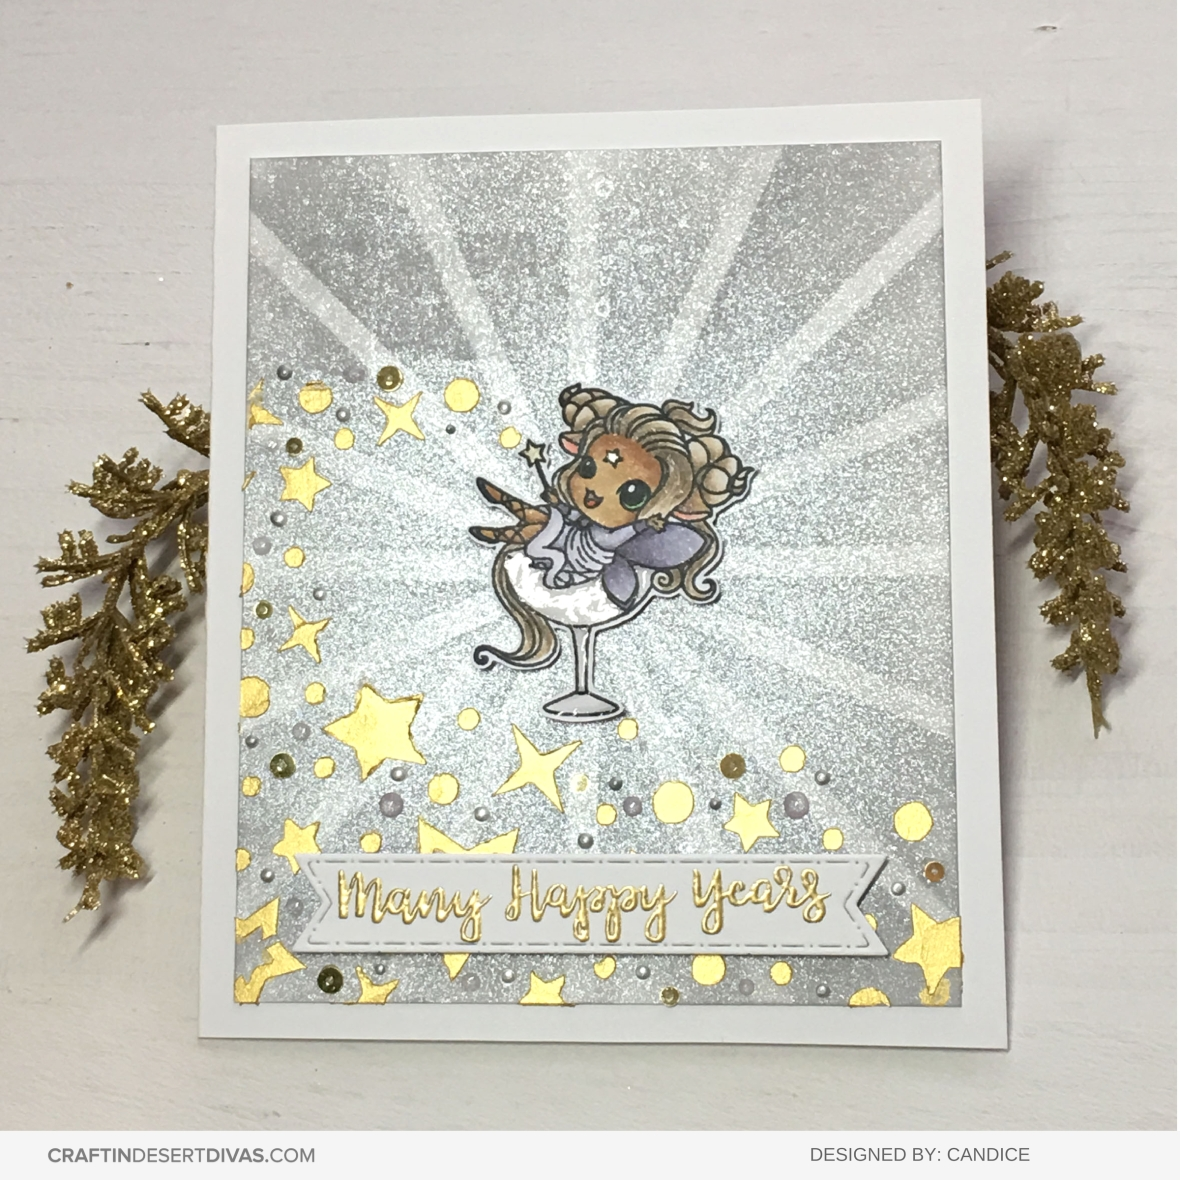 1220-Candice-New Year's color theme card 2 final